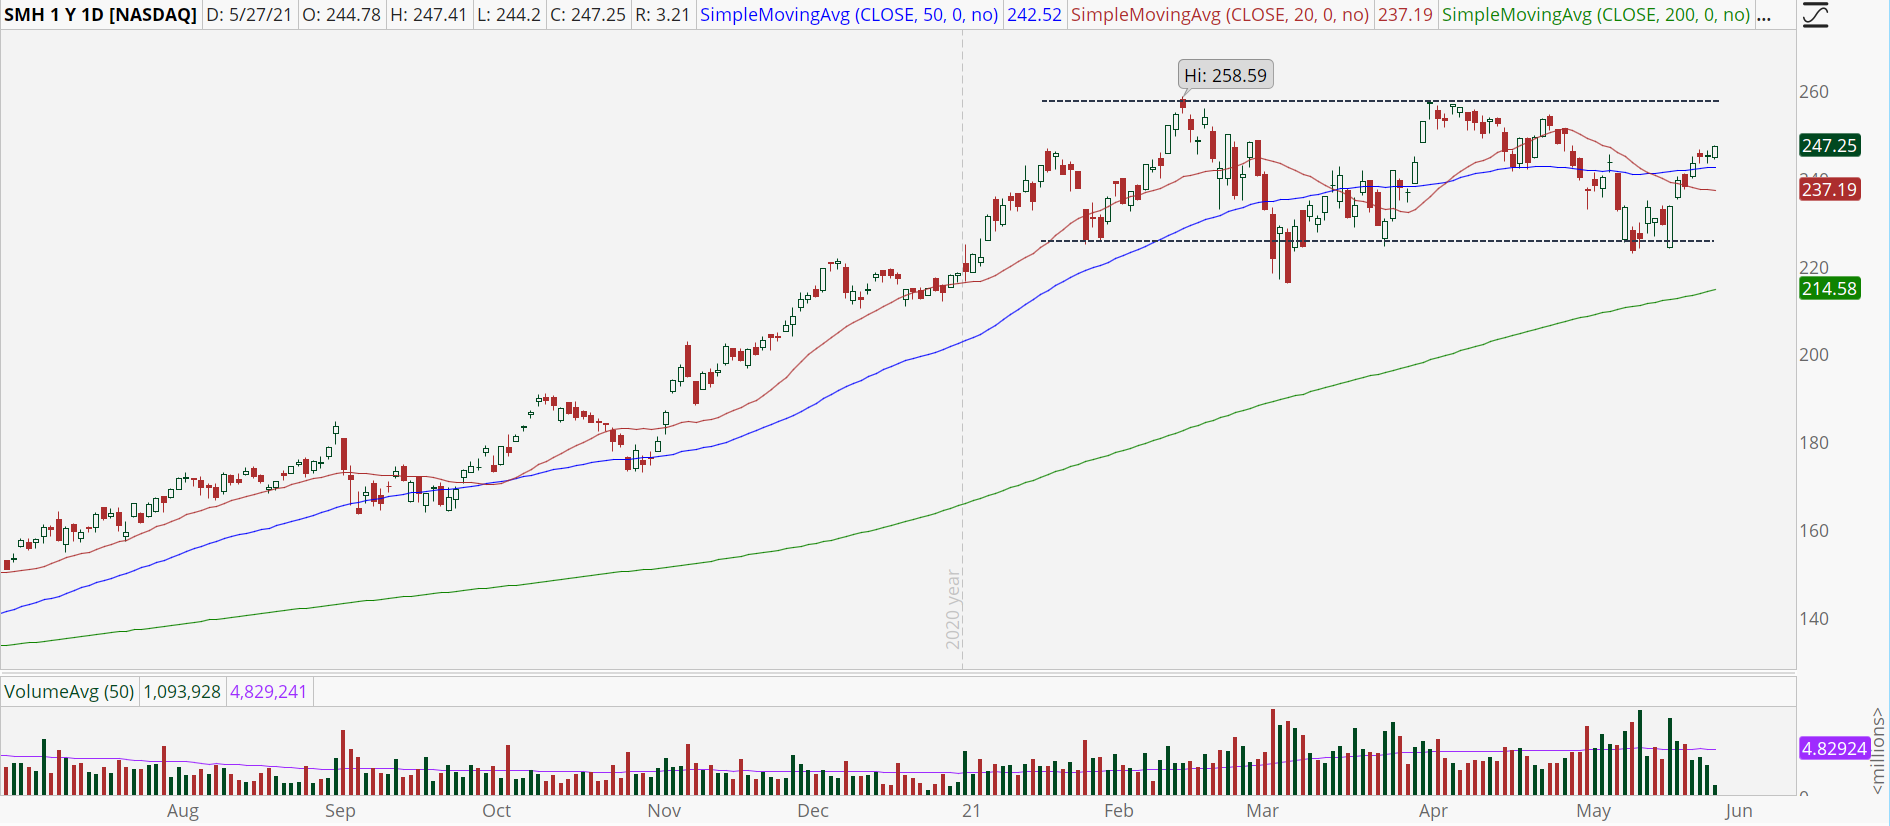 Semiconductor ETF (SMH) chart with recent break above 50 MA.